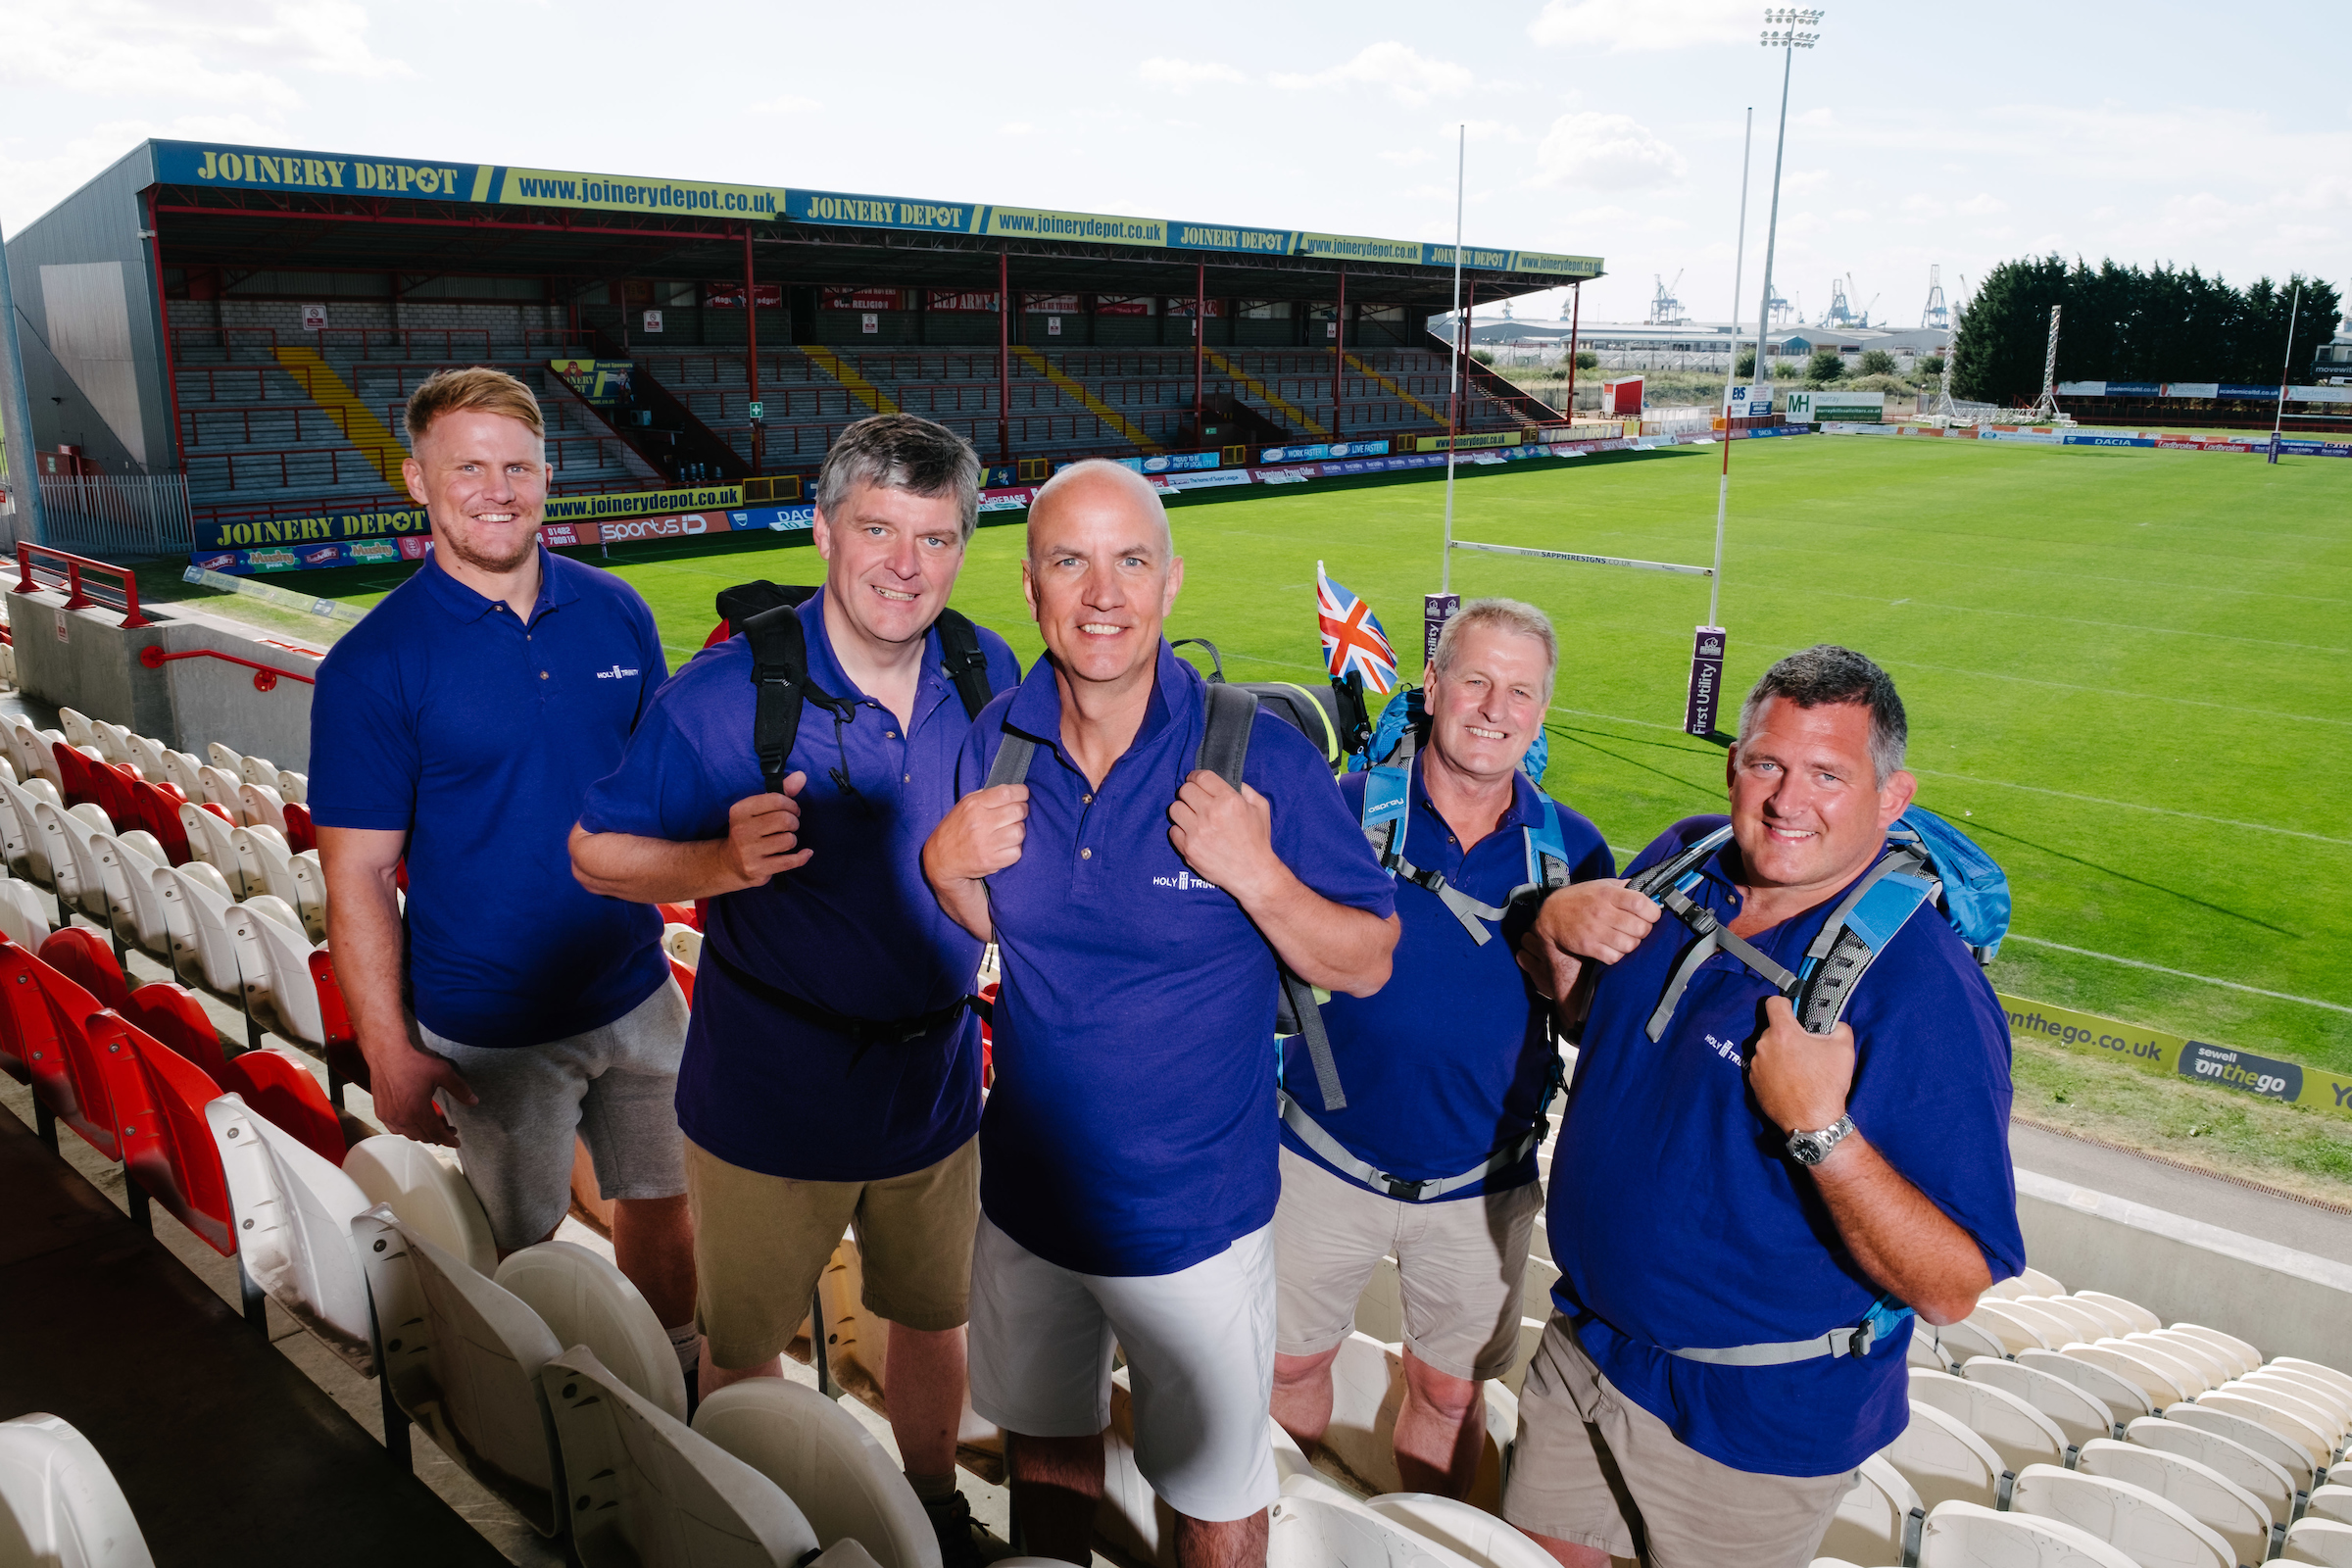 """""""Team Kili"""" members, from left, Iain Morrison, Brian Gilliland, Jonathan Leafe, Andy Allenby and Nic Marshall launch the Kilimanjaro challenge at the Lightstream Stadium, home of Hull Kingston Rovers."""